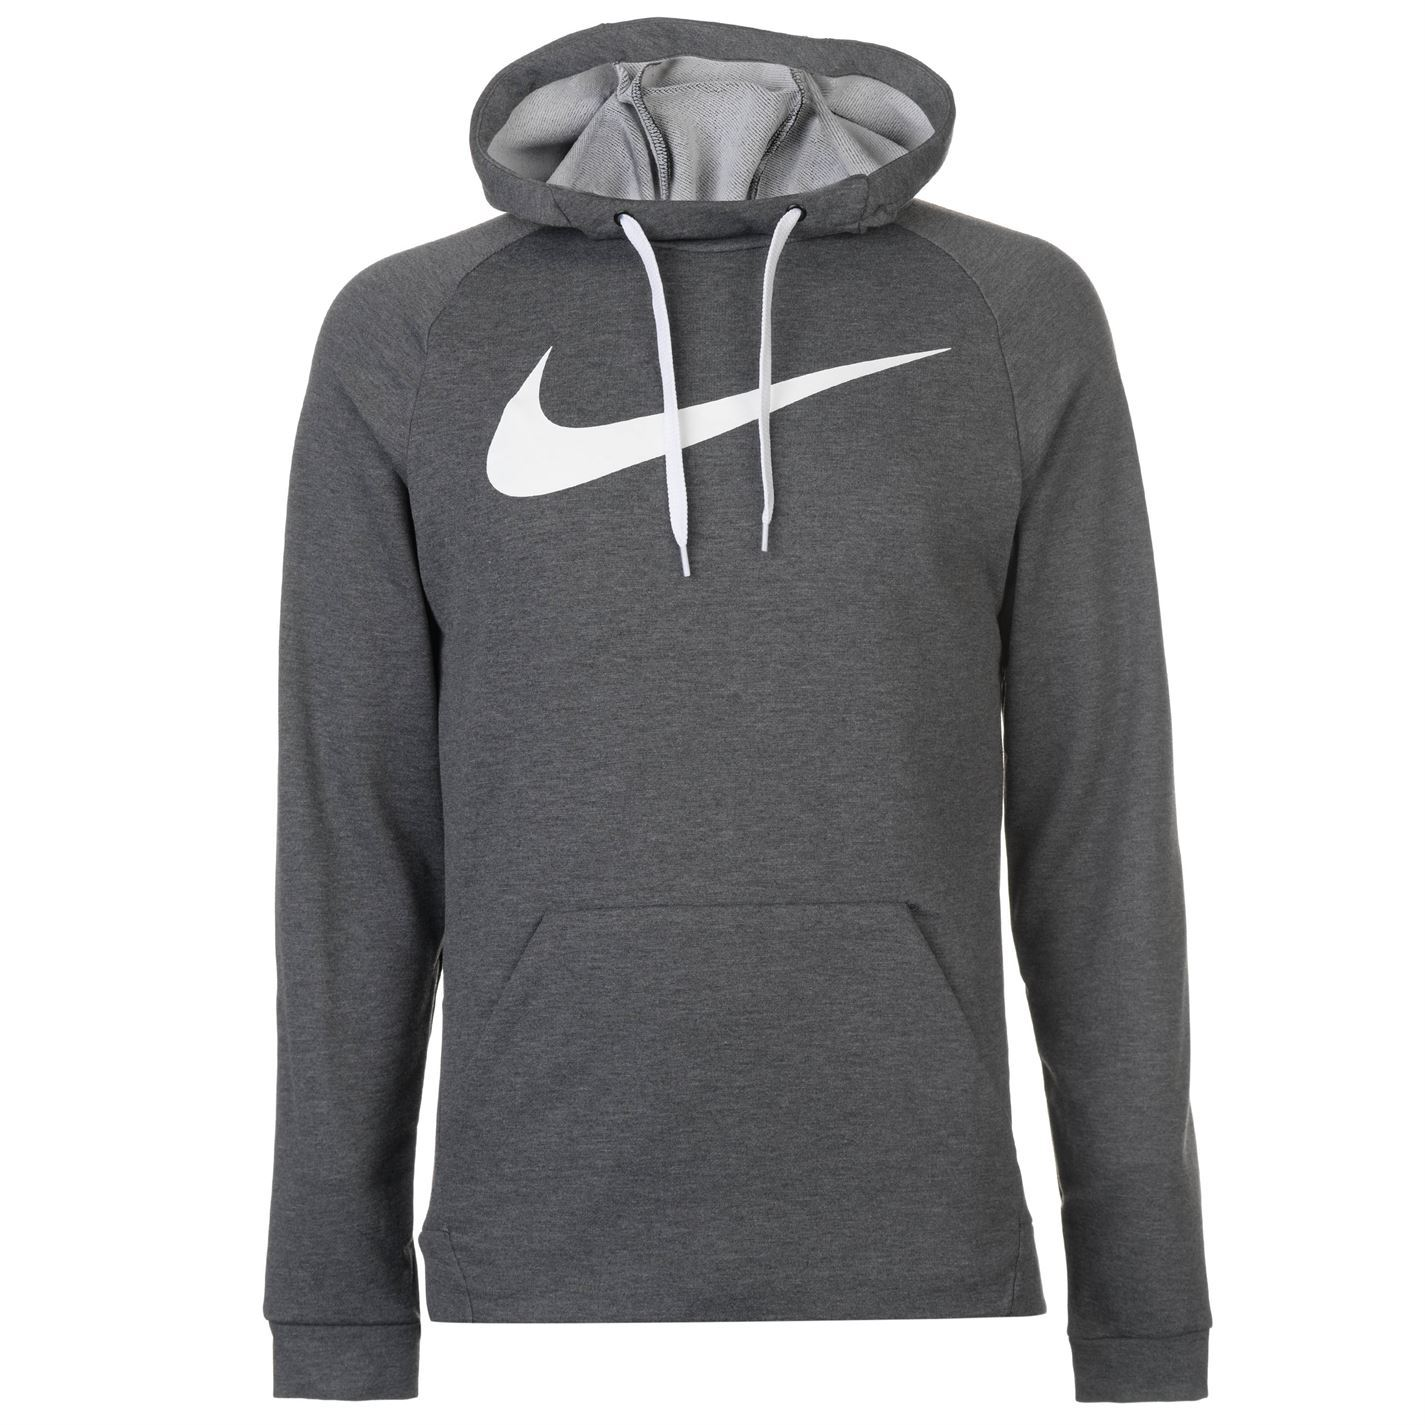 Nike-Dri-Fit-Swoosh-Pullover-Hoody-Mens-OTH-Hoodie-Sweatshirt-Sweater-Hooded-Top thumbnail 9